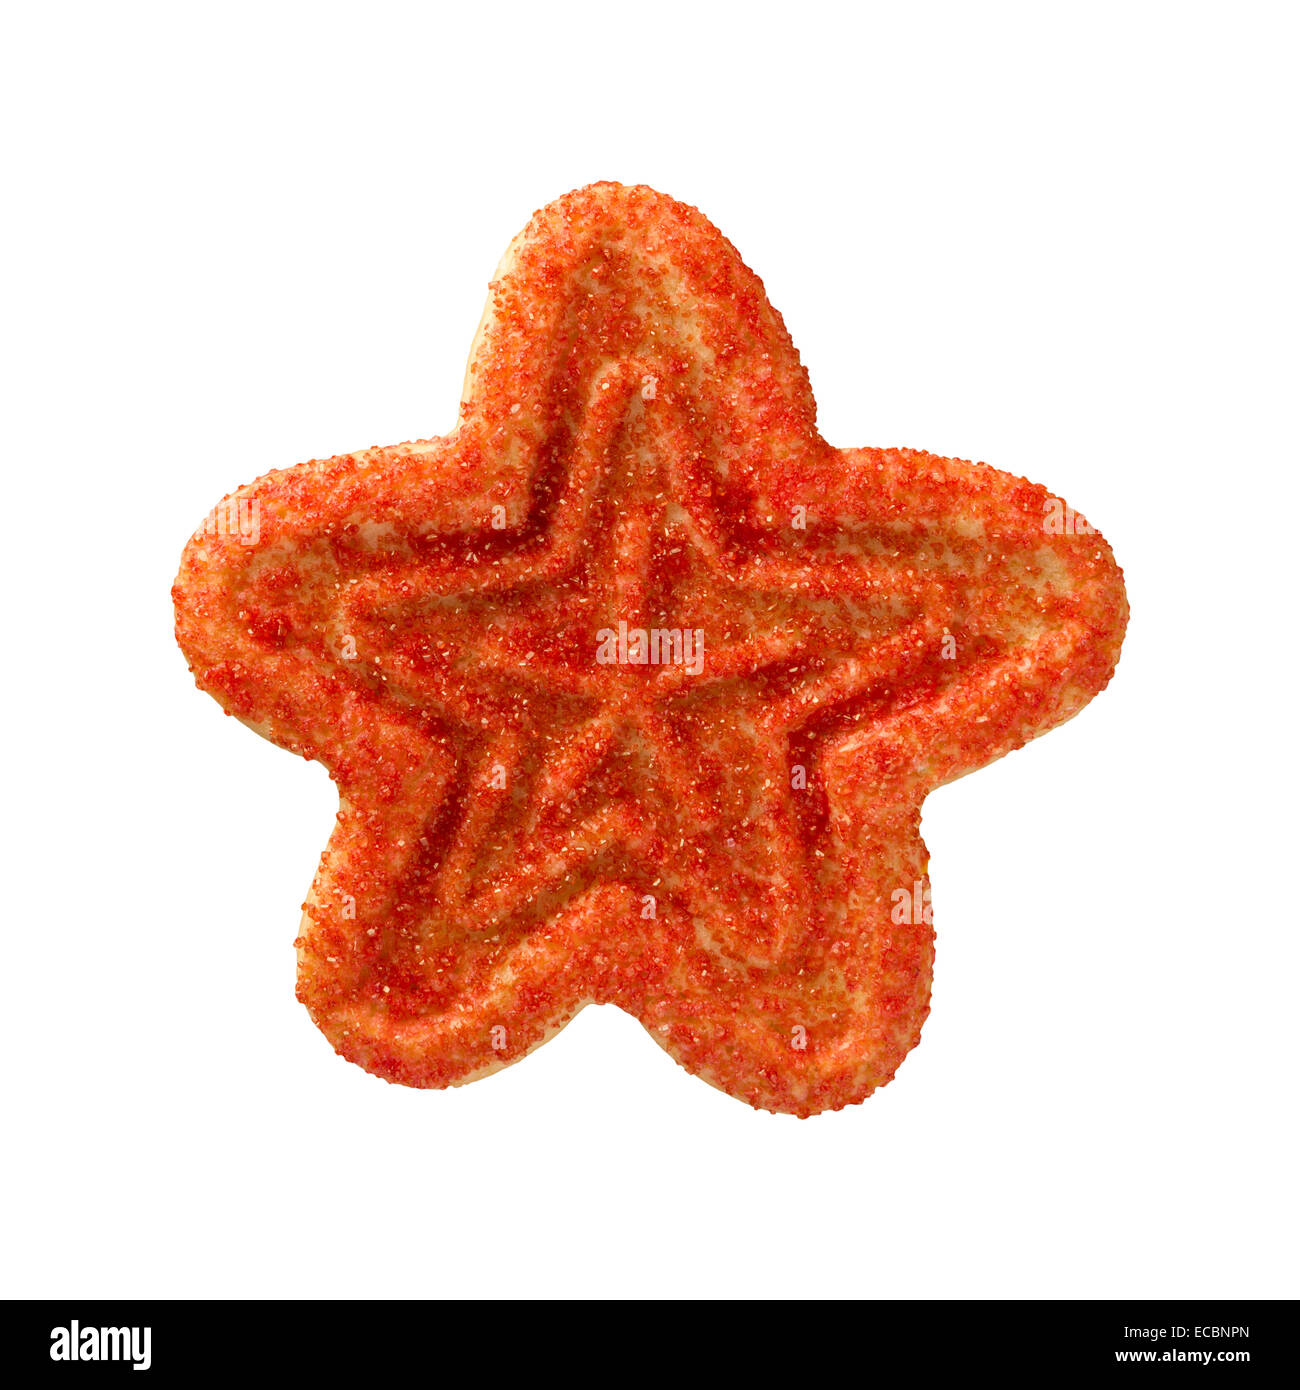 Red Christmas Star Cookie with sprinkles. - Stock Image